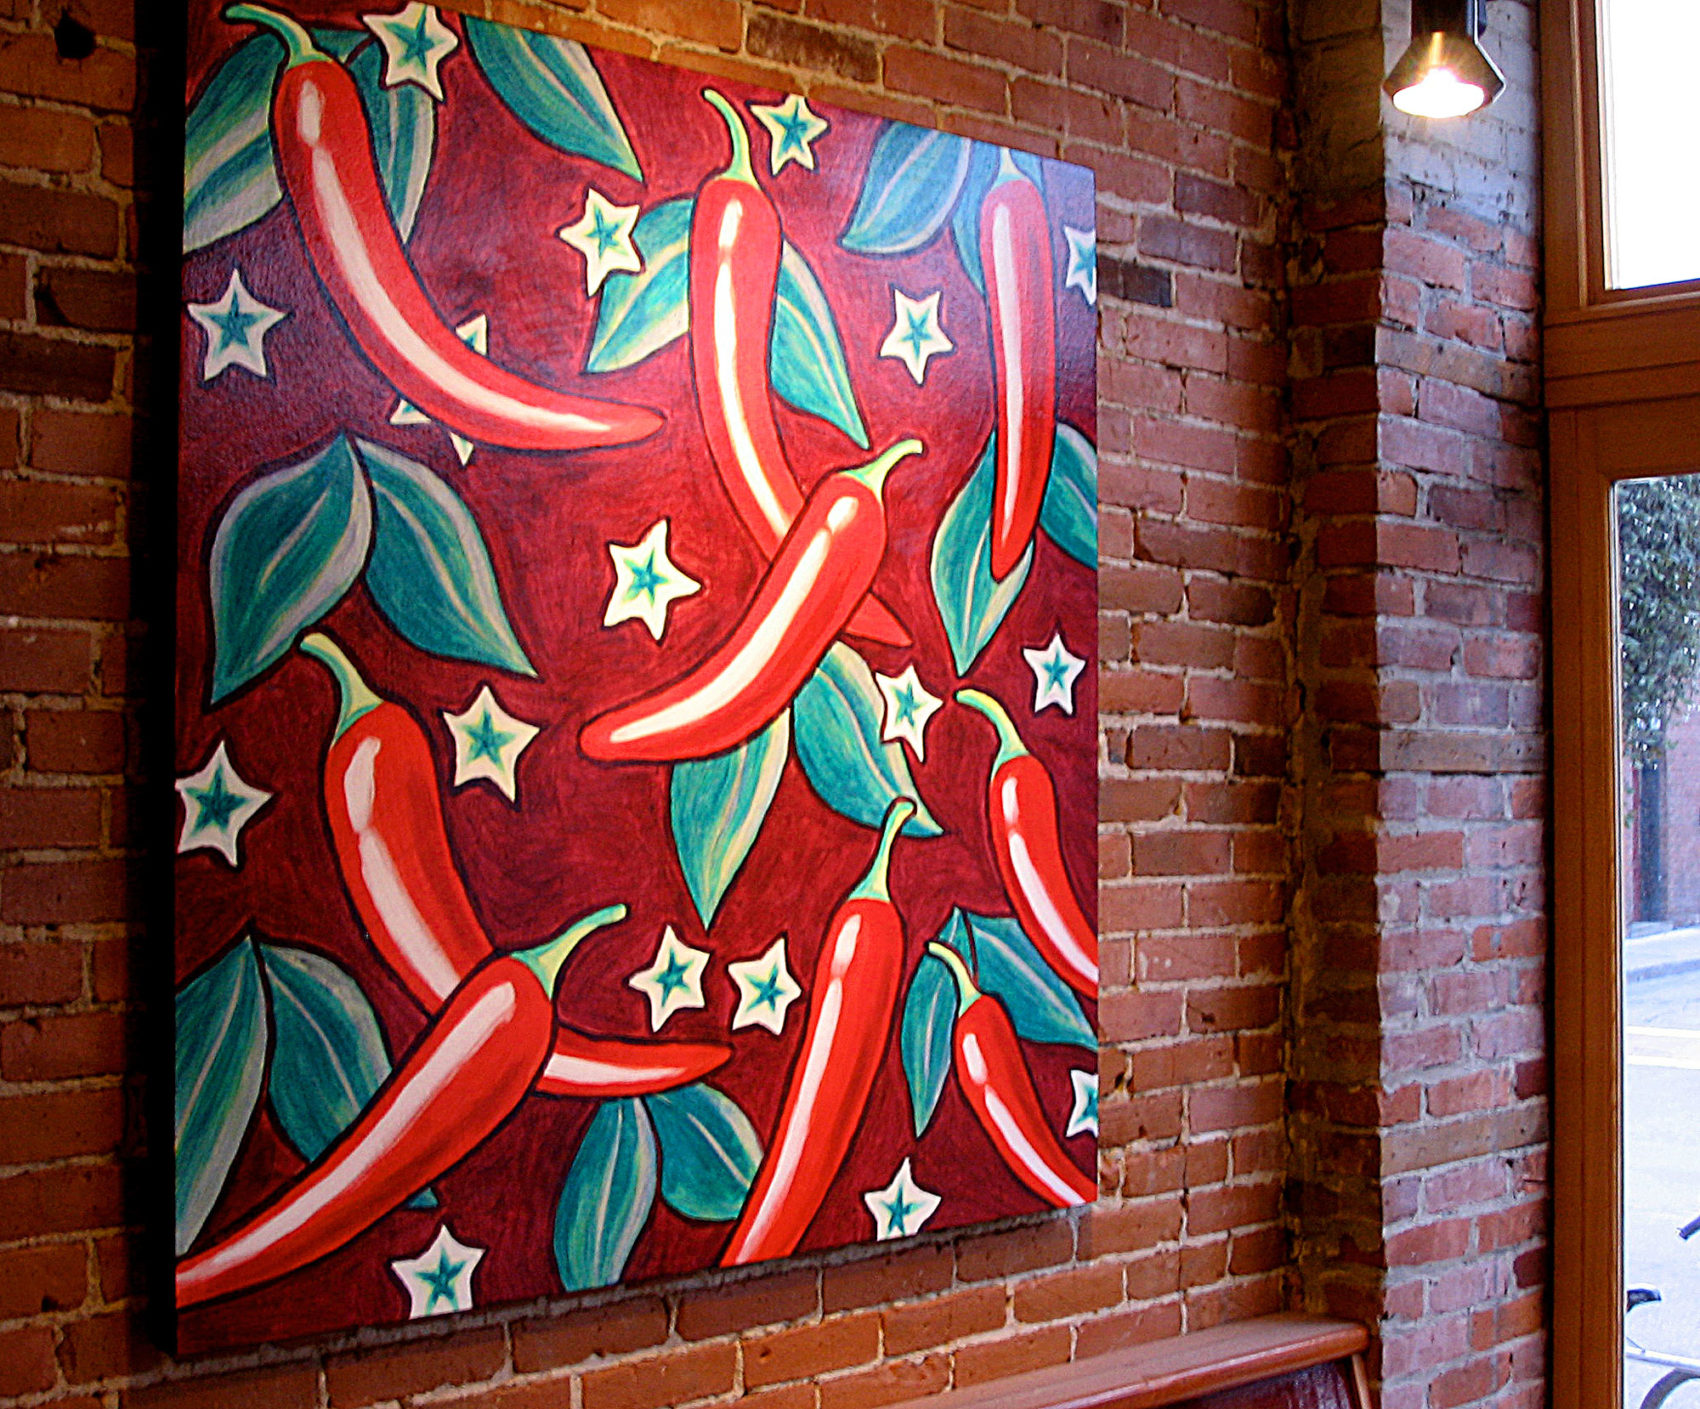 Peppers - painting by Trace Meek at Bueno Burlington